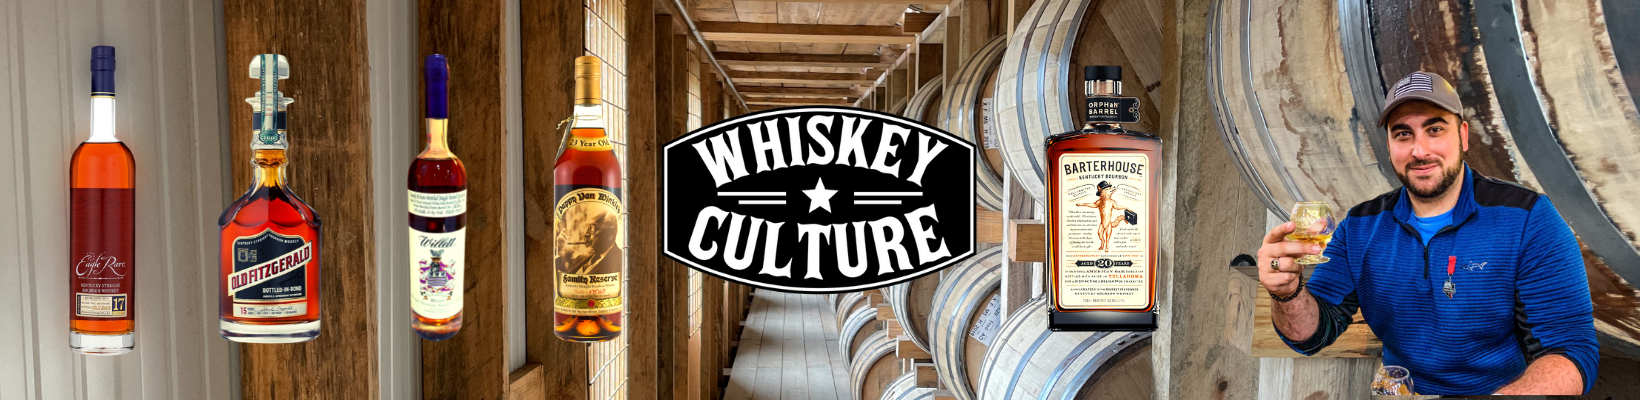 A picture of rare whiskey bottles and greg sinadinos from whiskey culture drinking bourbon